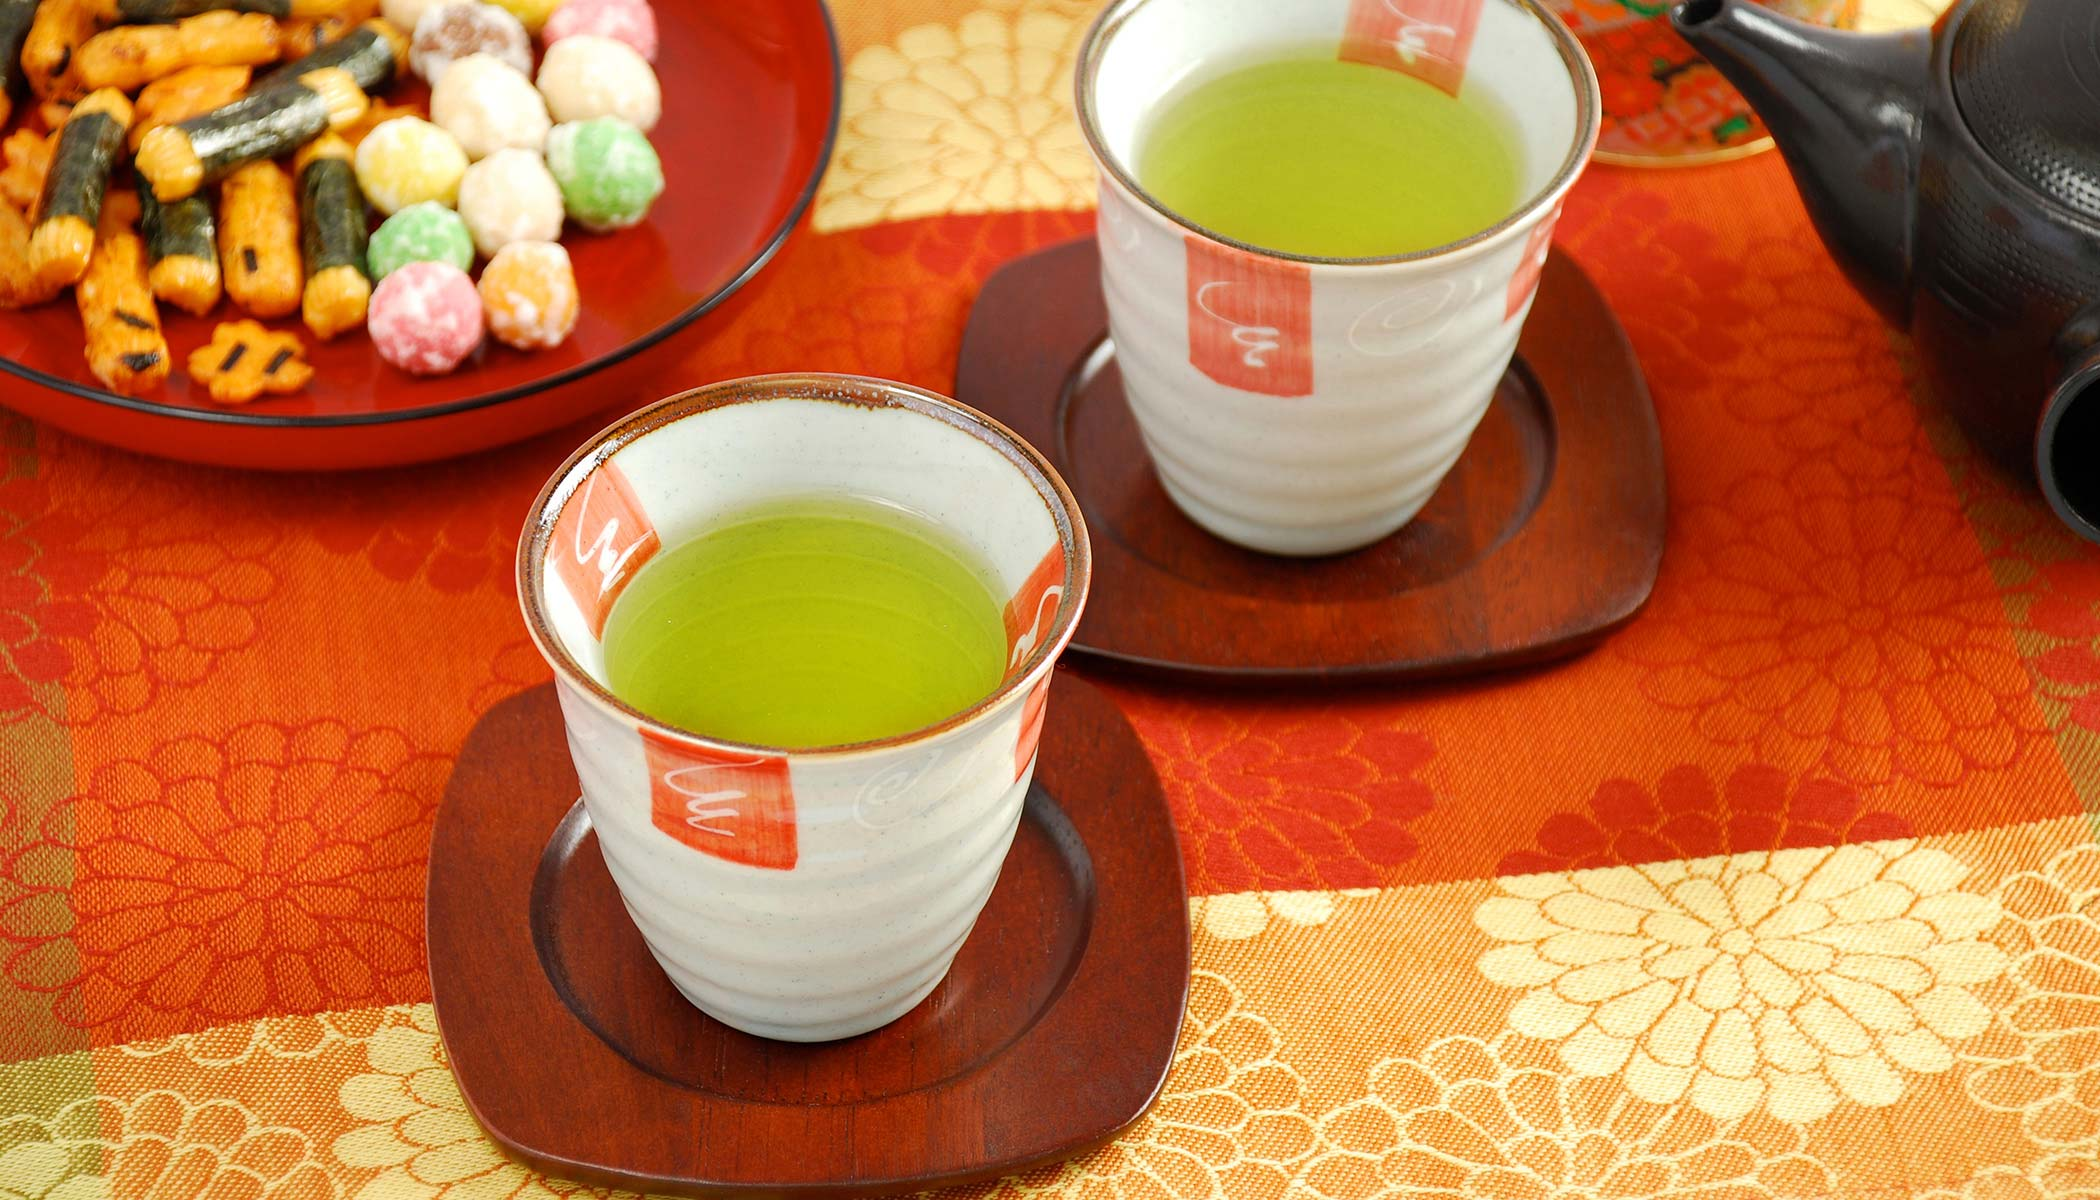 Hot Green Tea <i>(Sencha)</i>